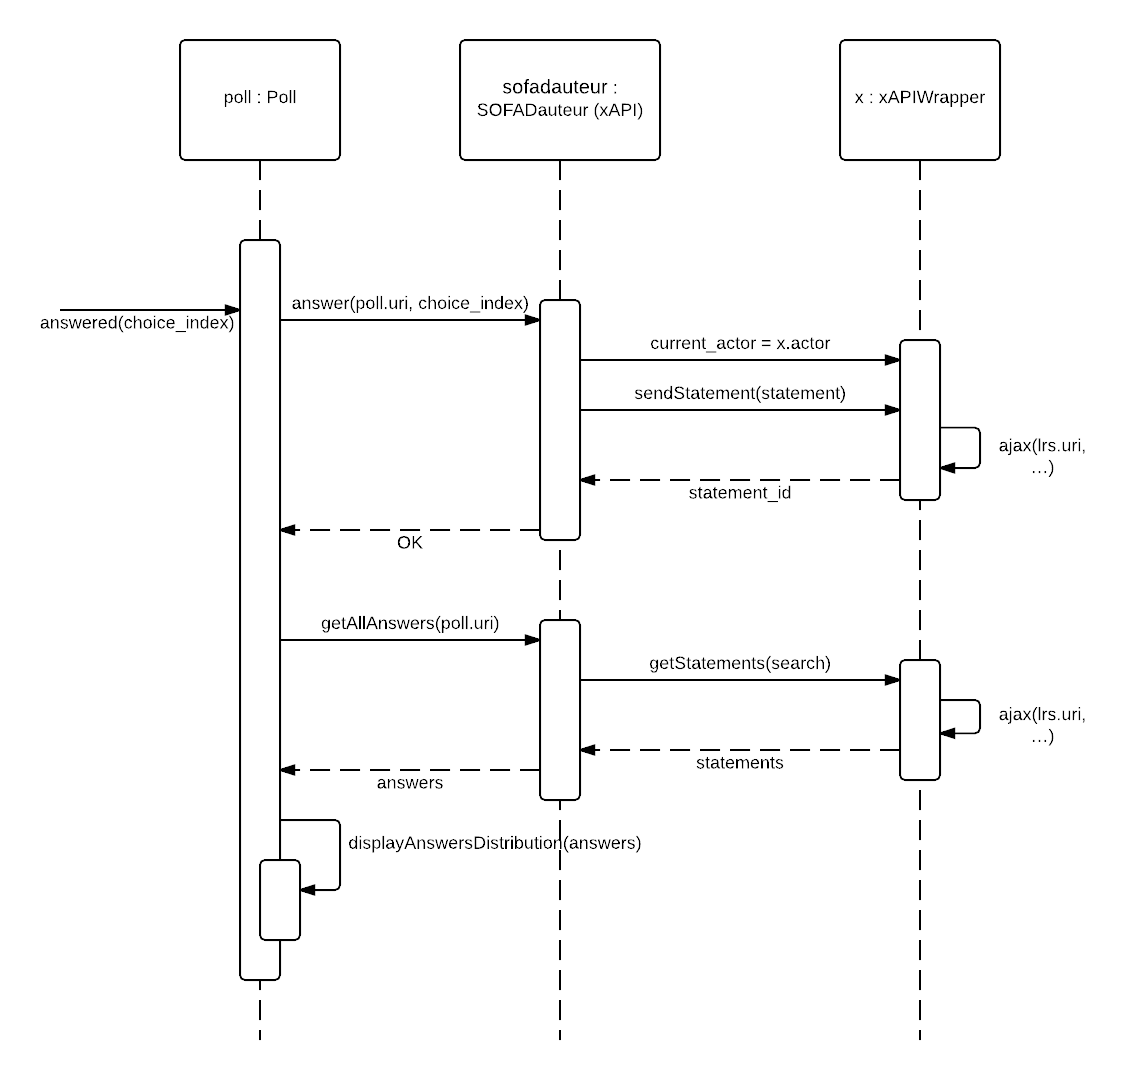 sequence diagram questions and answers how to wire a generator transfer switch implementation of the experience api within sofad